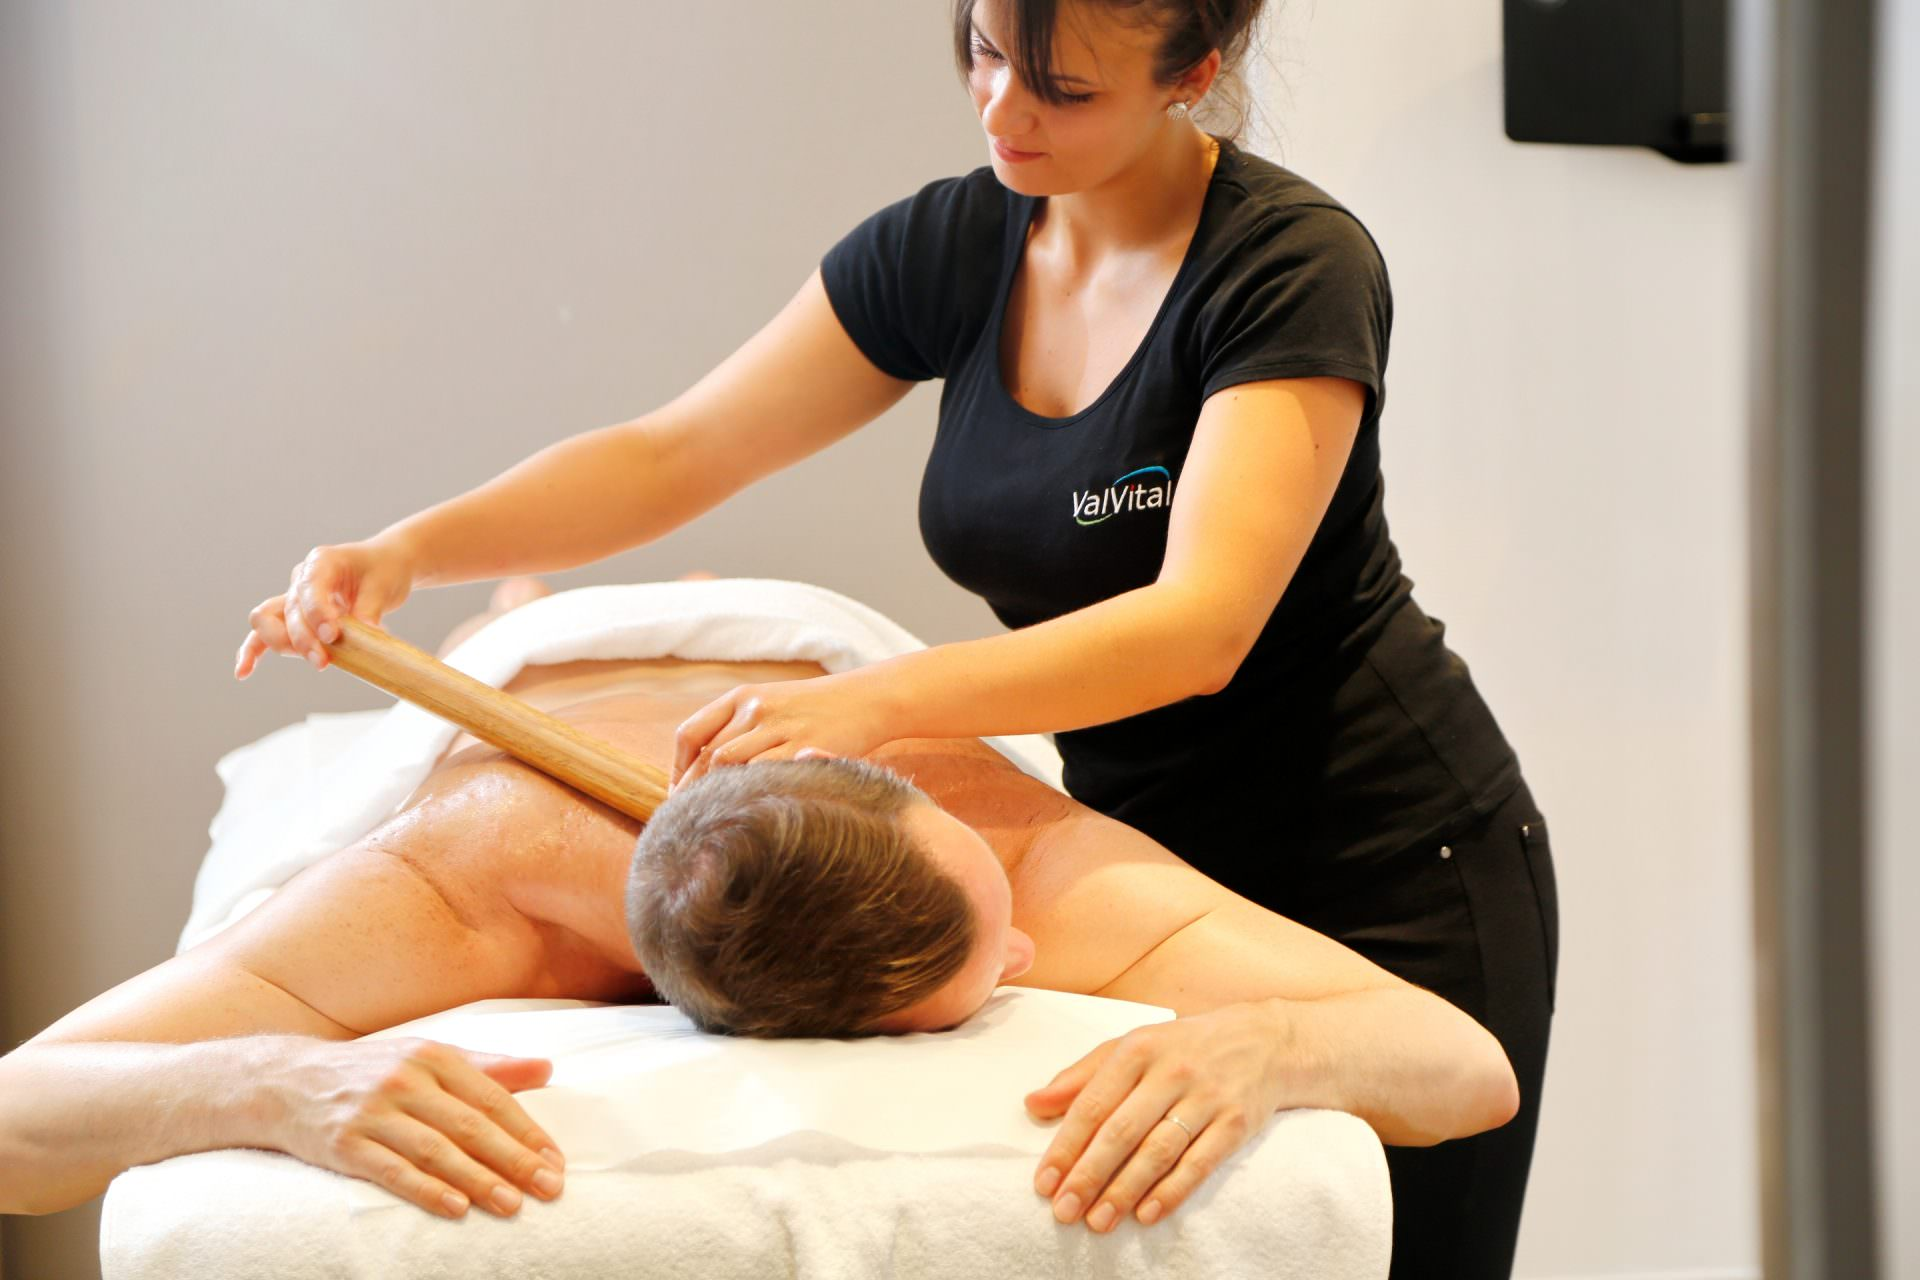 Massage thermes Valvital Thonon